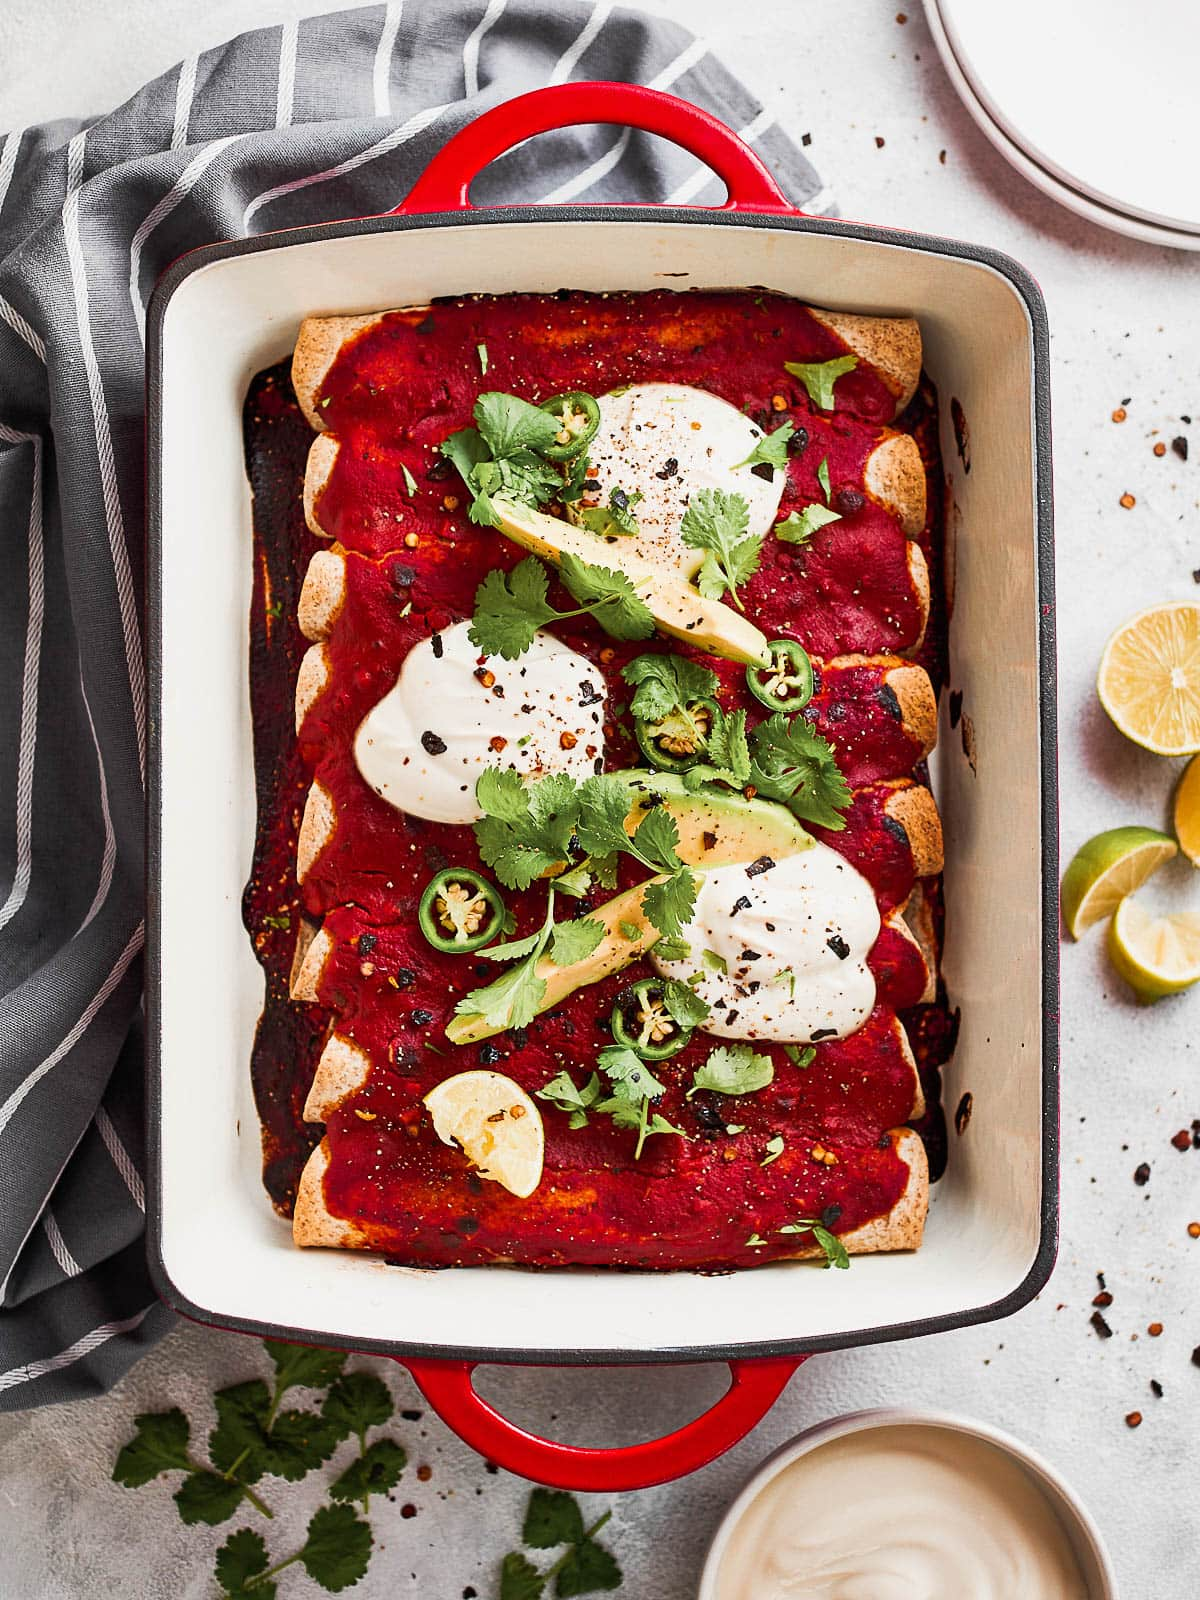 Overhead photograph of a casserole dish with jackfruit enchiladas in it, topped with avocado, yoghurt and cilantro